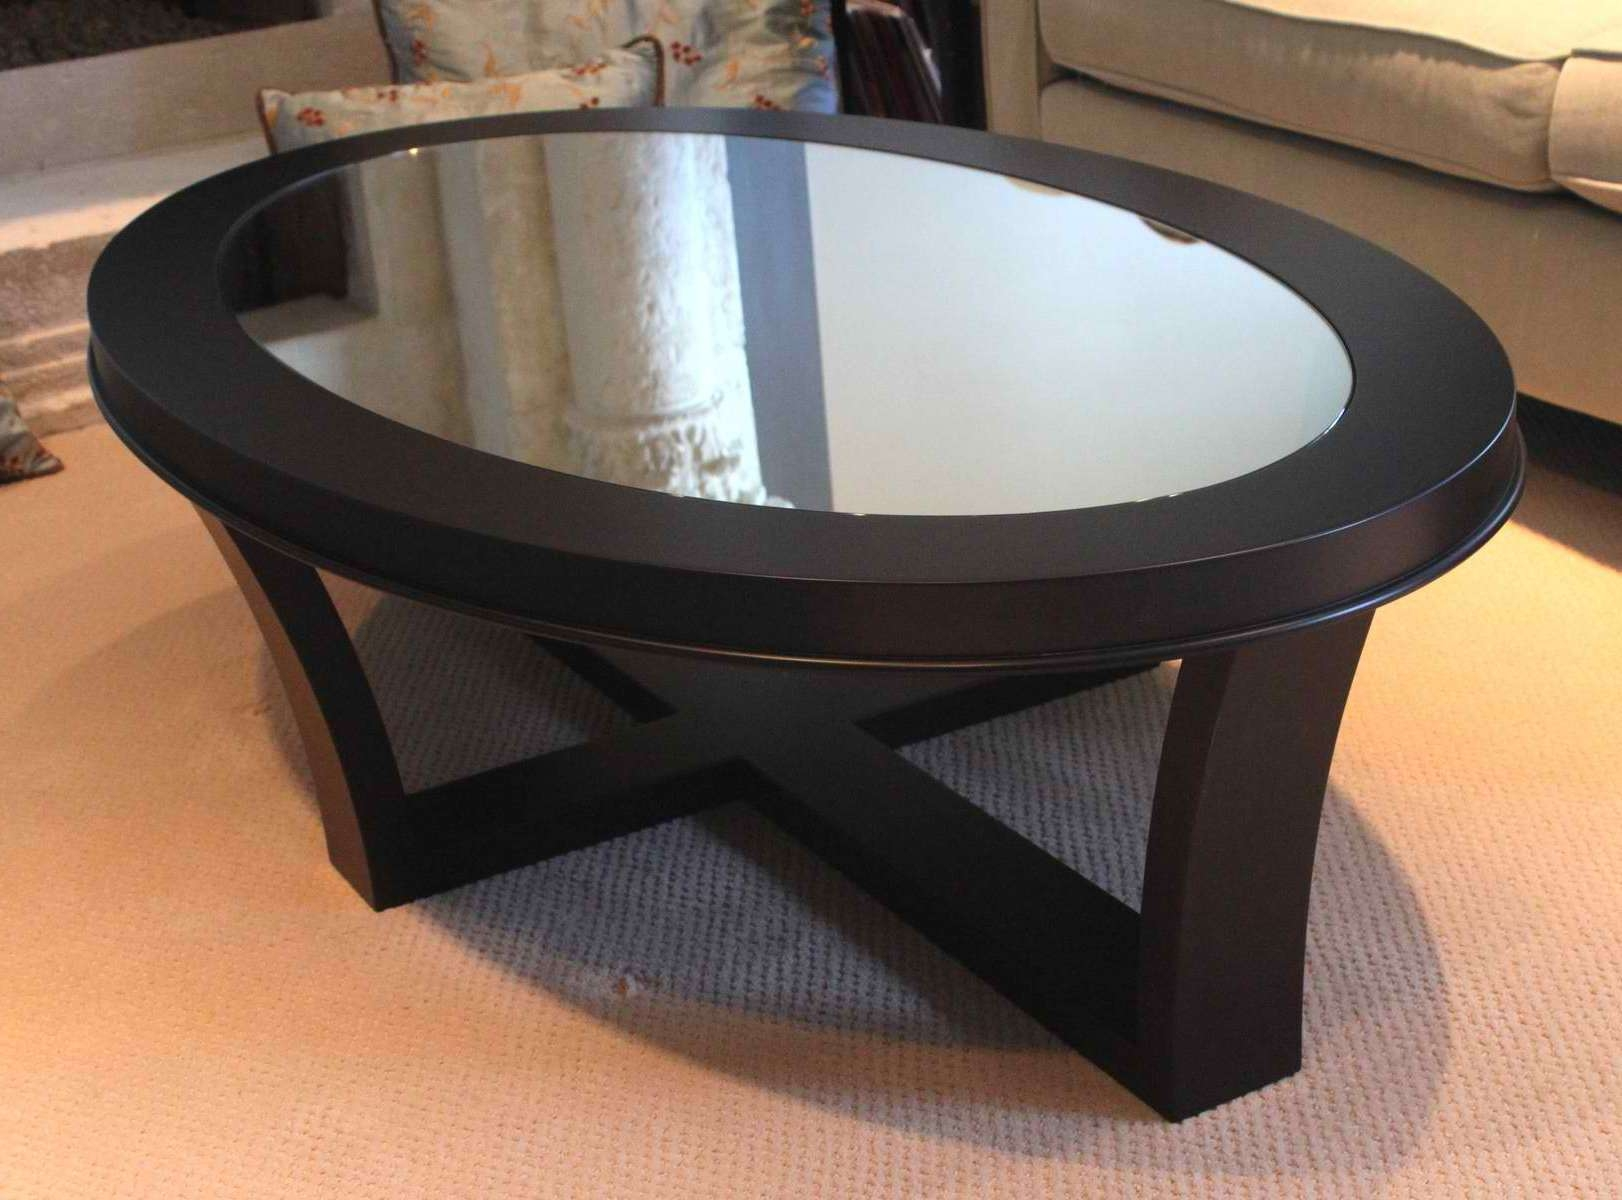 Most Popular Oval Shaped Glass Coffee Tables Throughout Coffee Tables Ideas: Awesome Black Oval Coffee Table Set Oval Wood (View 10 of 20)